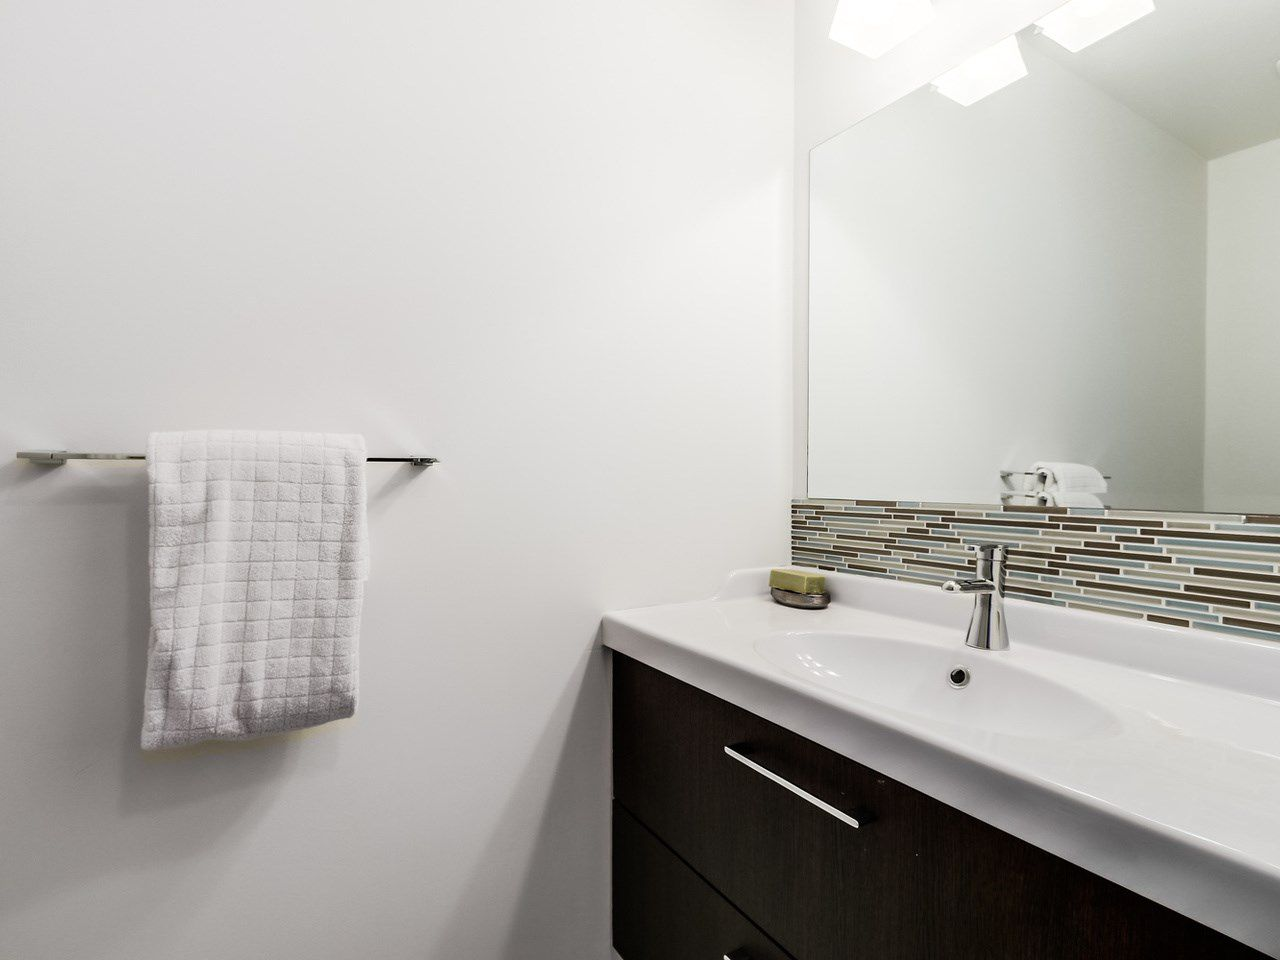 Photo 5: Photos: 2 269 E KEITH ROAD in North Vancouver: Lower Lonsdale House 1/2 Duplex for sale : MLS®# R2025742